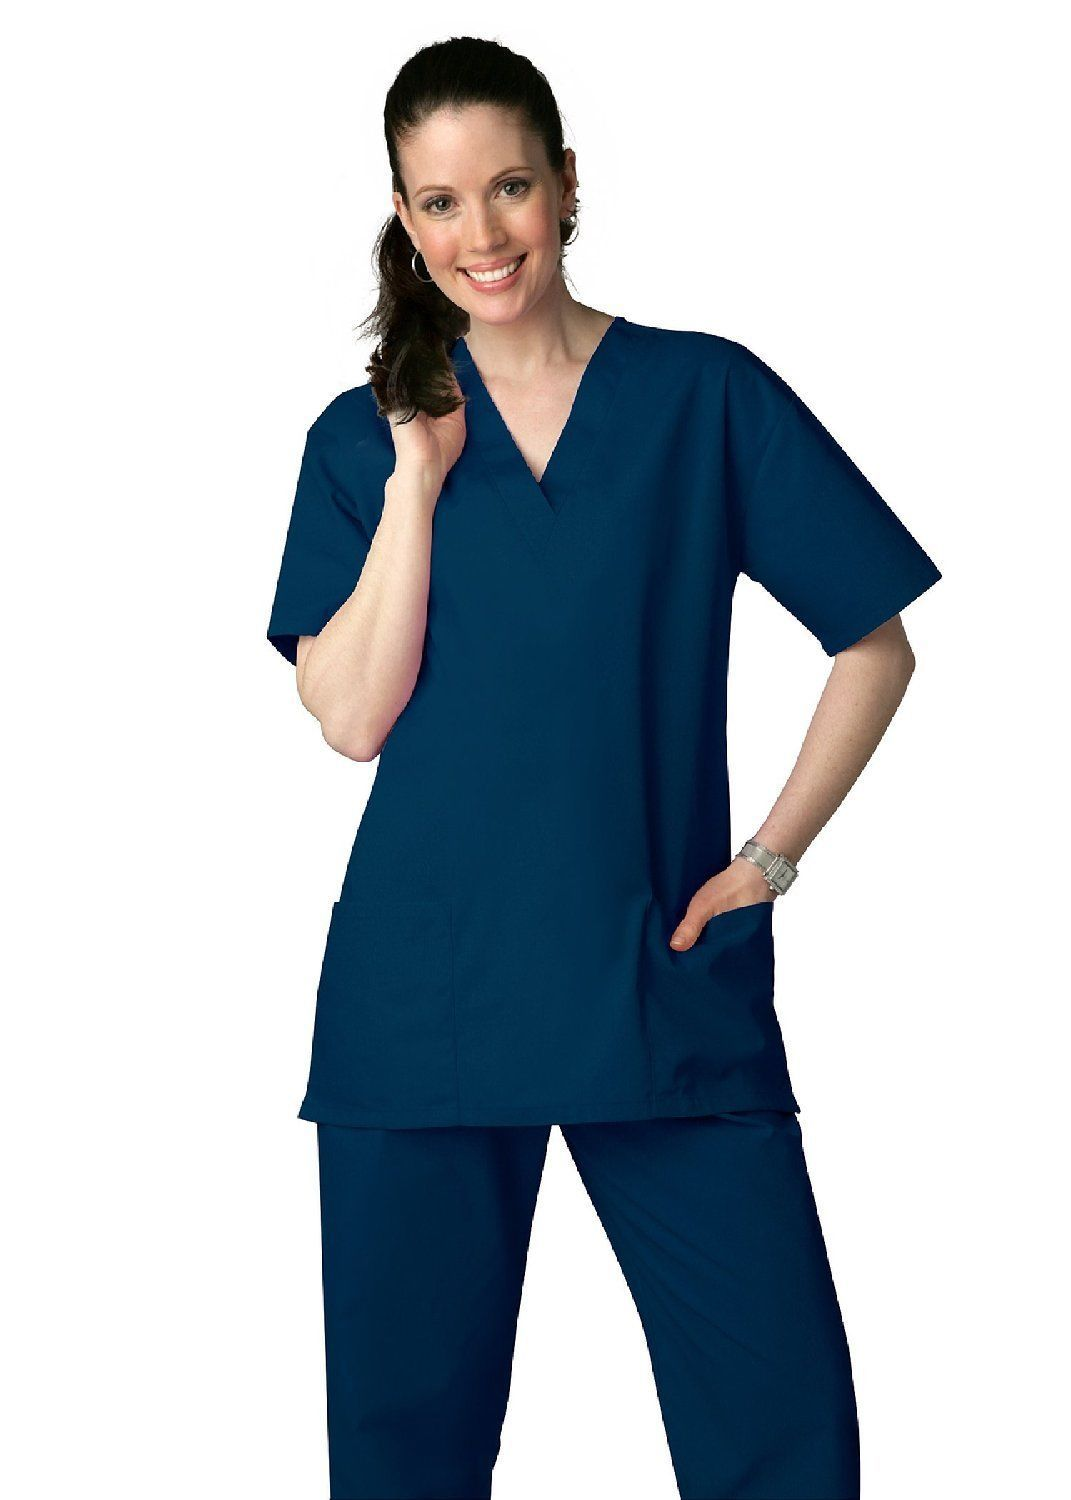 Scrub Set Navy V Neck Top Drawstring Pants 3XL Adar Medical Uniforms 2 Piece image 3